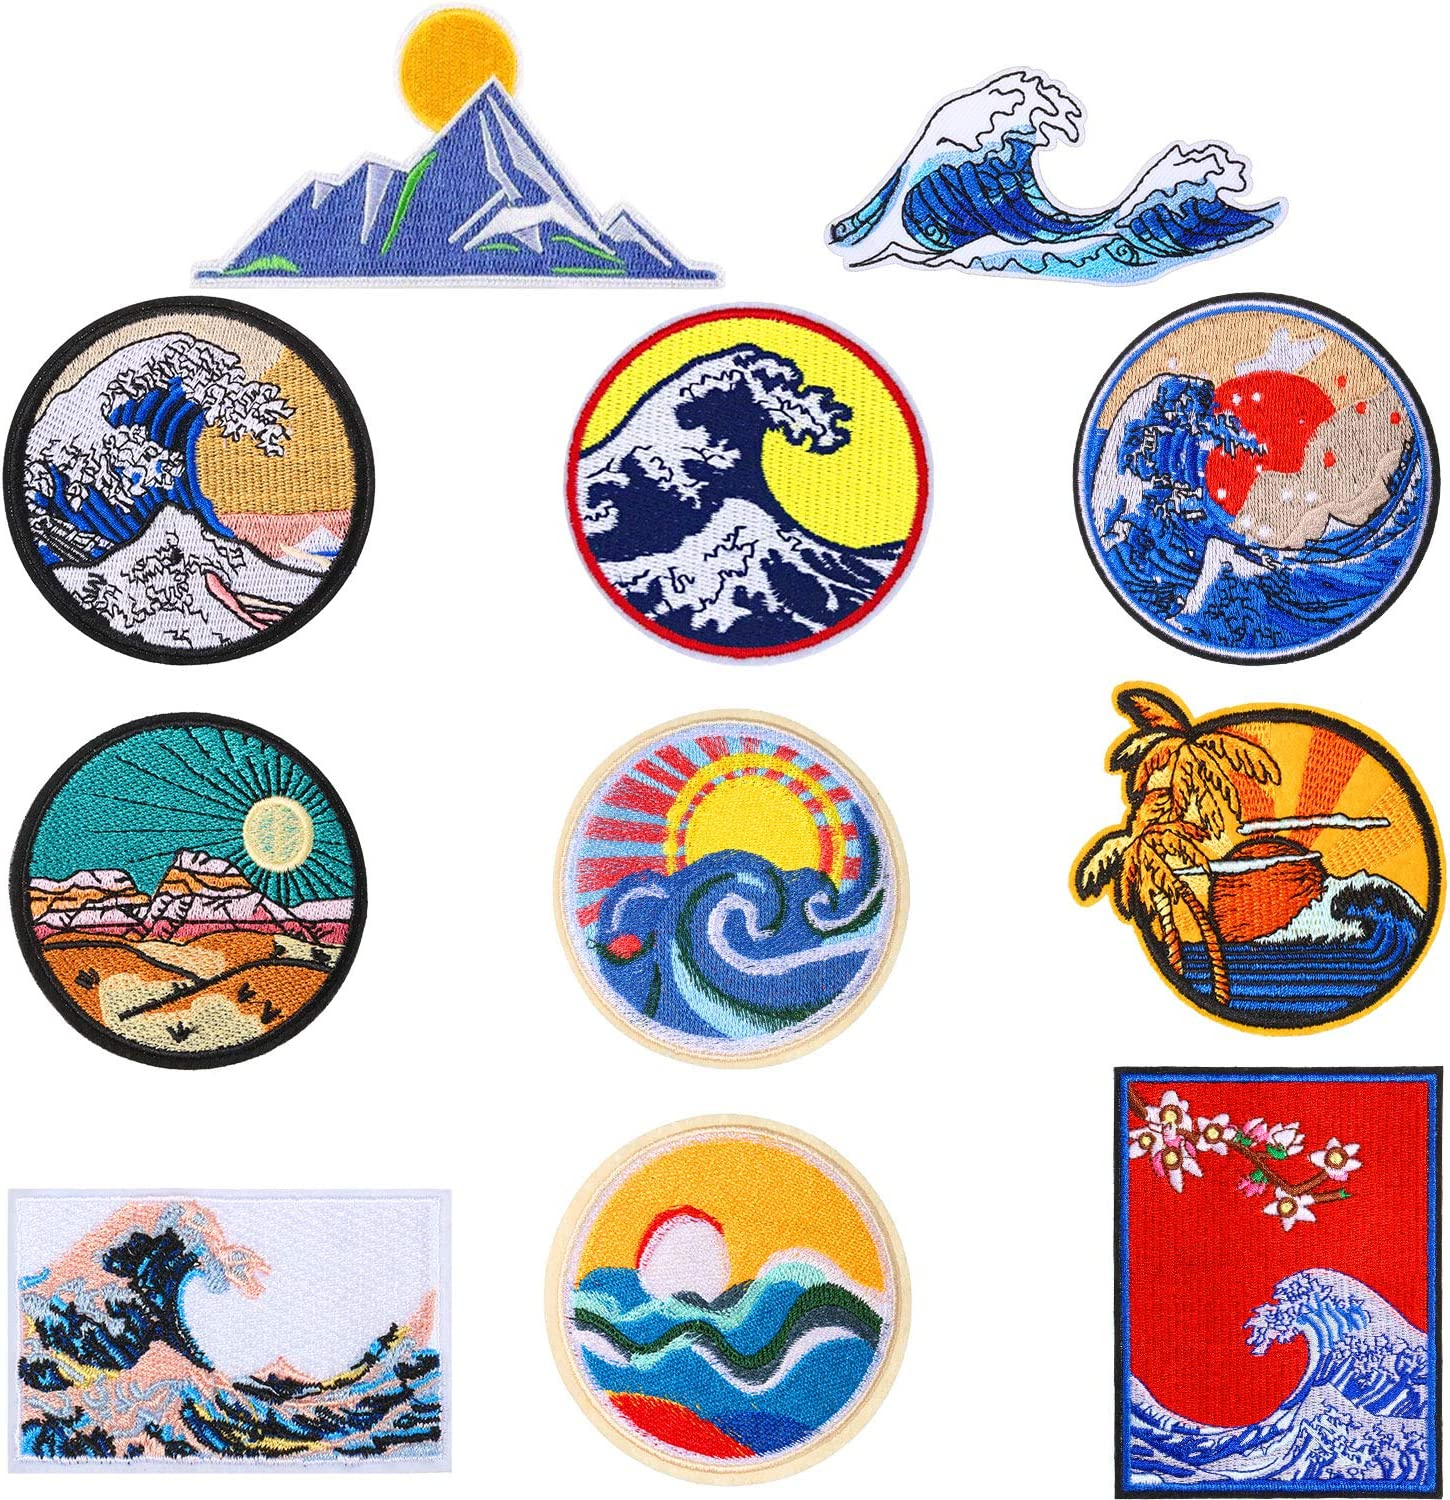 11 Pieces Wave Off Kanagawa Patch Embroidered Applique Badge Iron on Sew on Emblem DIY Accessories